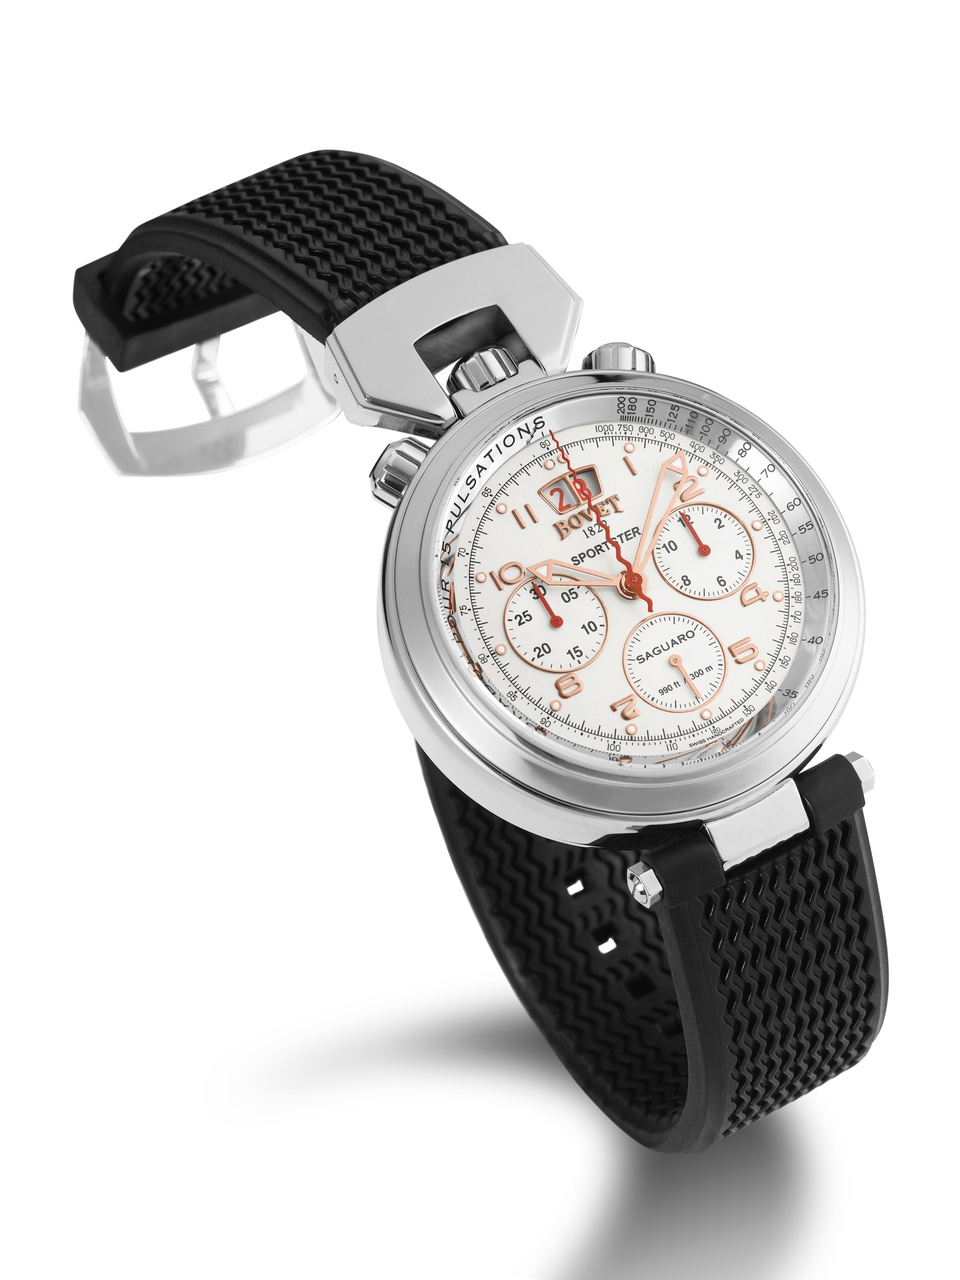 Bovet Watch Sportster Ref. Nr. SP0415-MA Call 312-944-3100 | For Availability